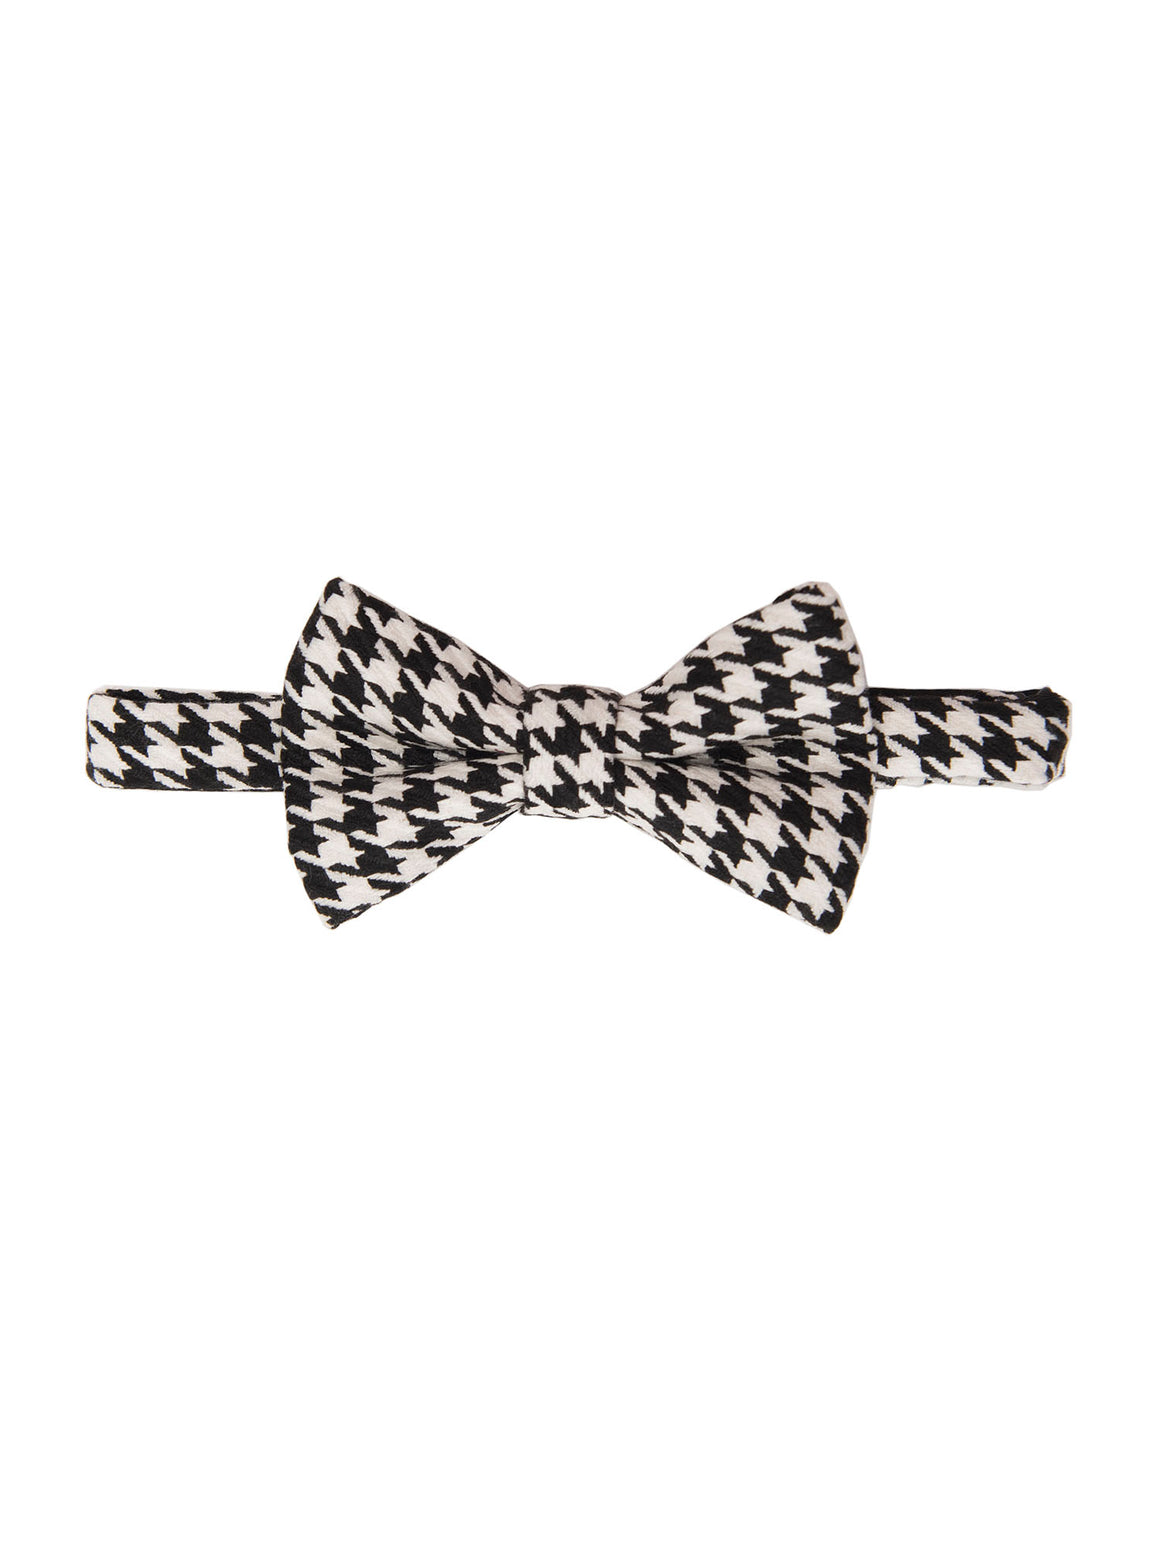 Bradley Bow Tie - Black & White Houndstooth